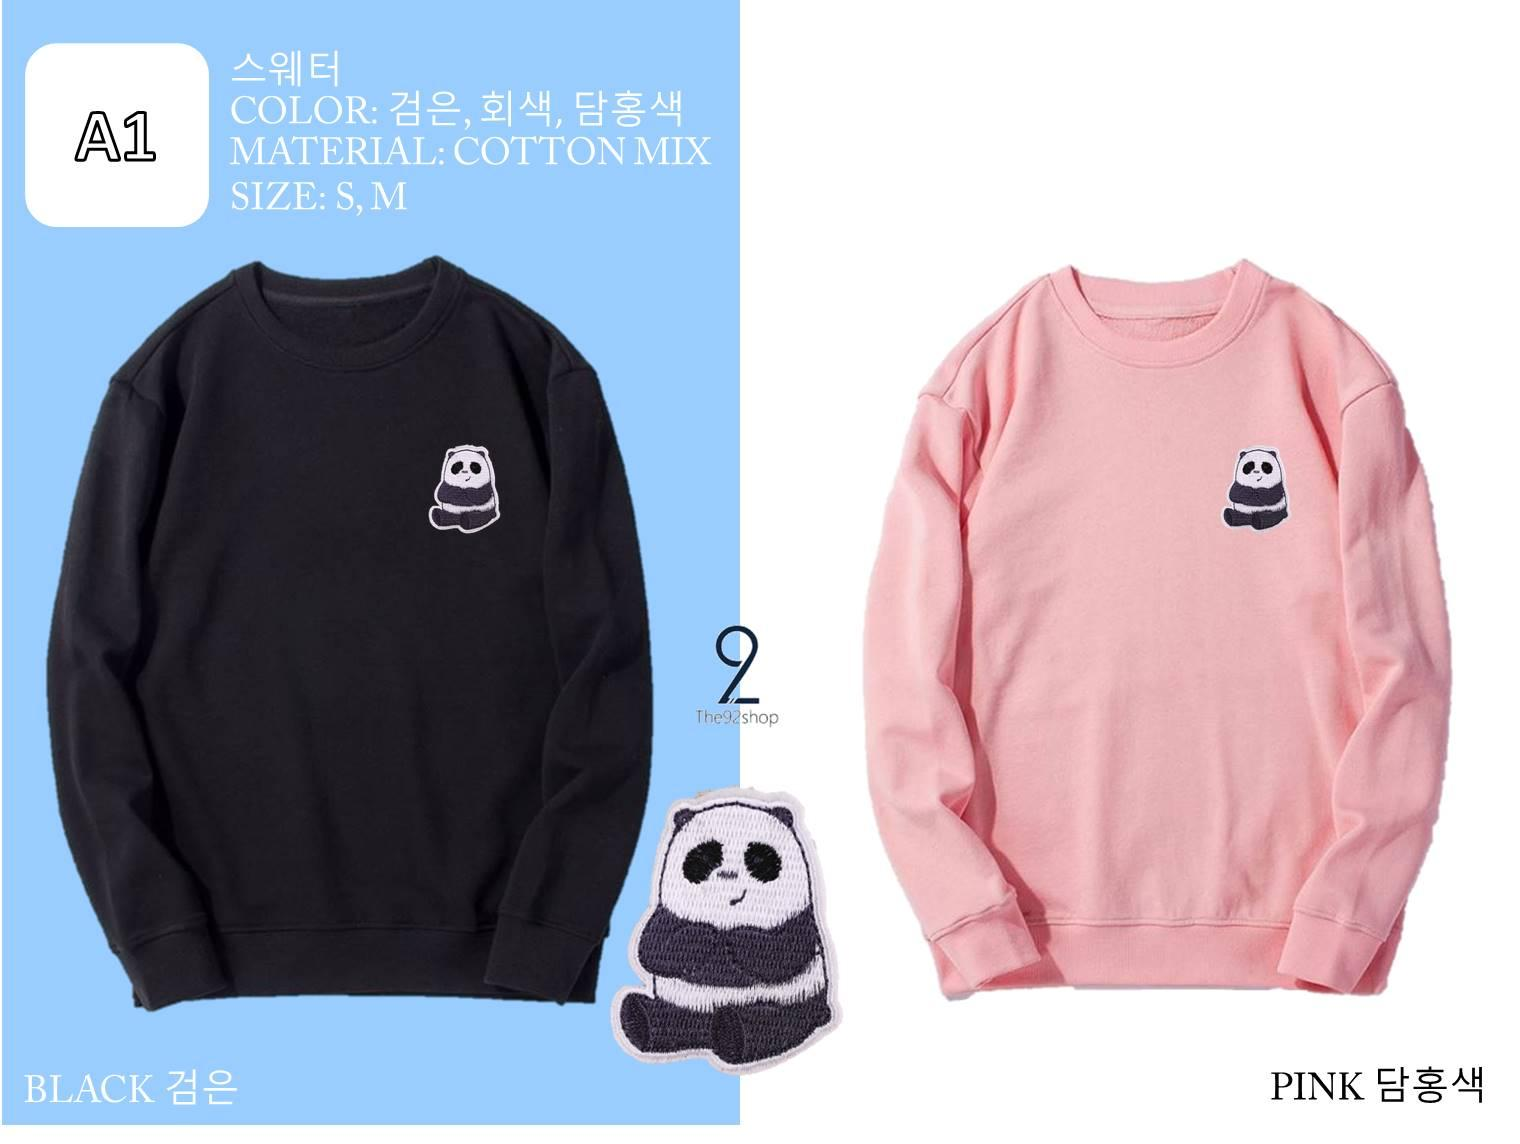 T92 Pan Pan We Bare Bears Sweater (unisex) By The92shop.